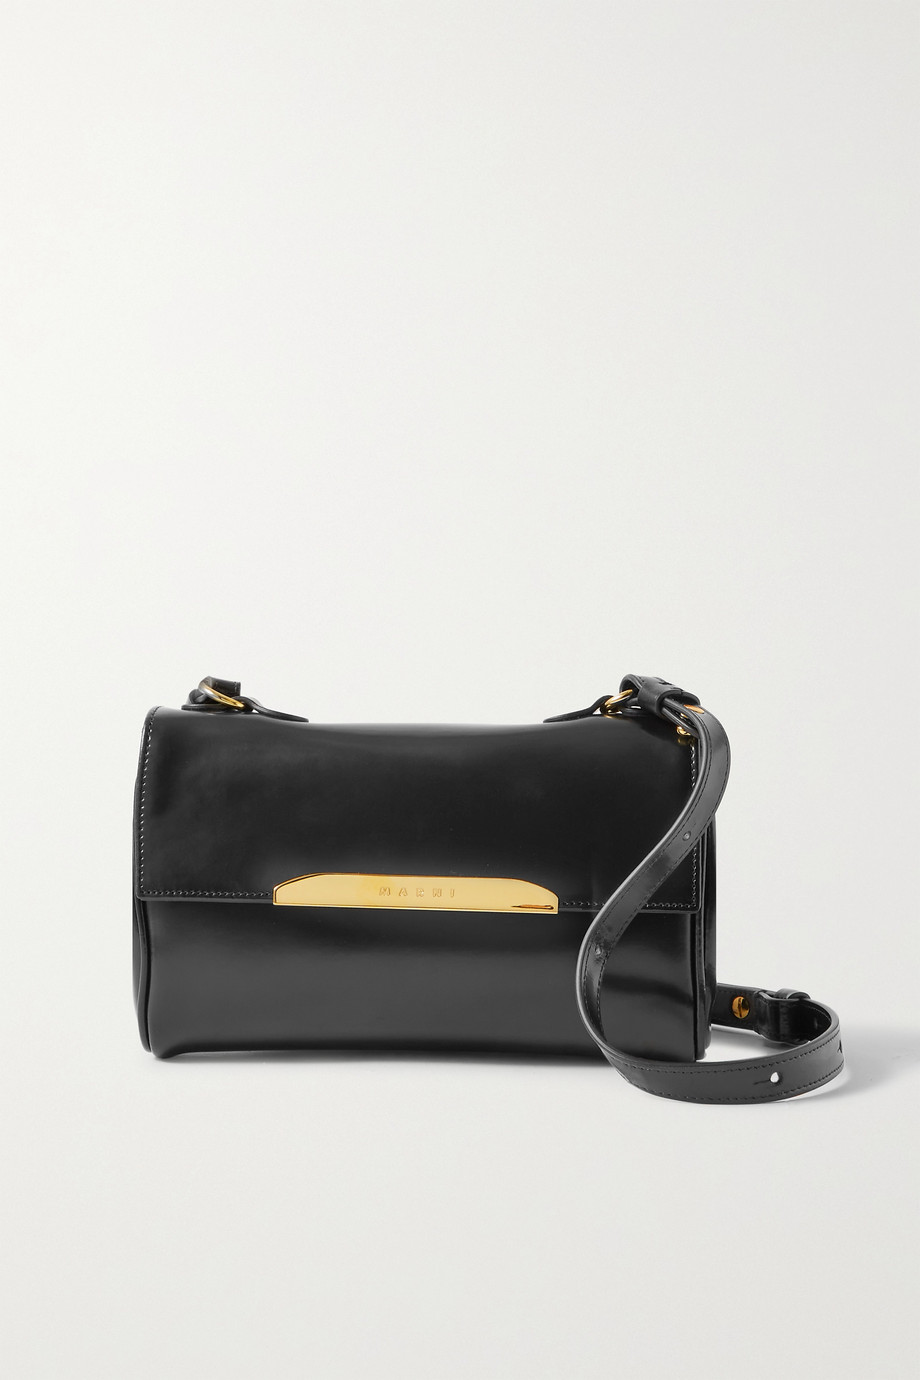 Marni Corinne mini leather shoulder bag